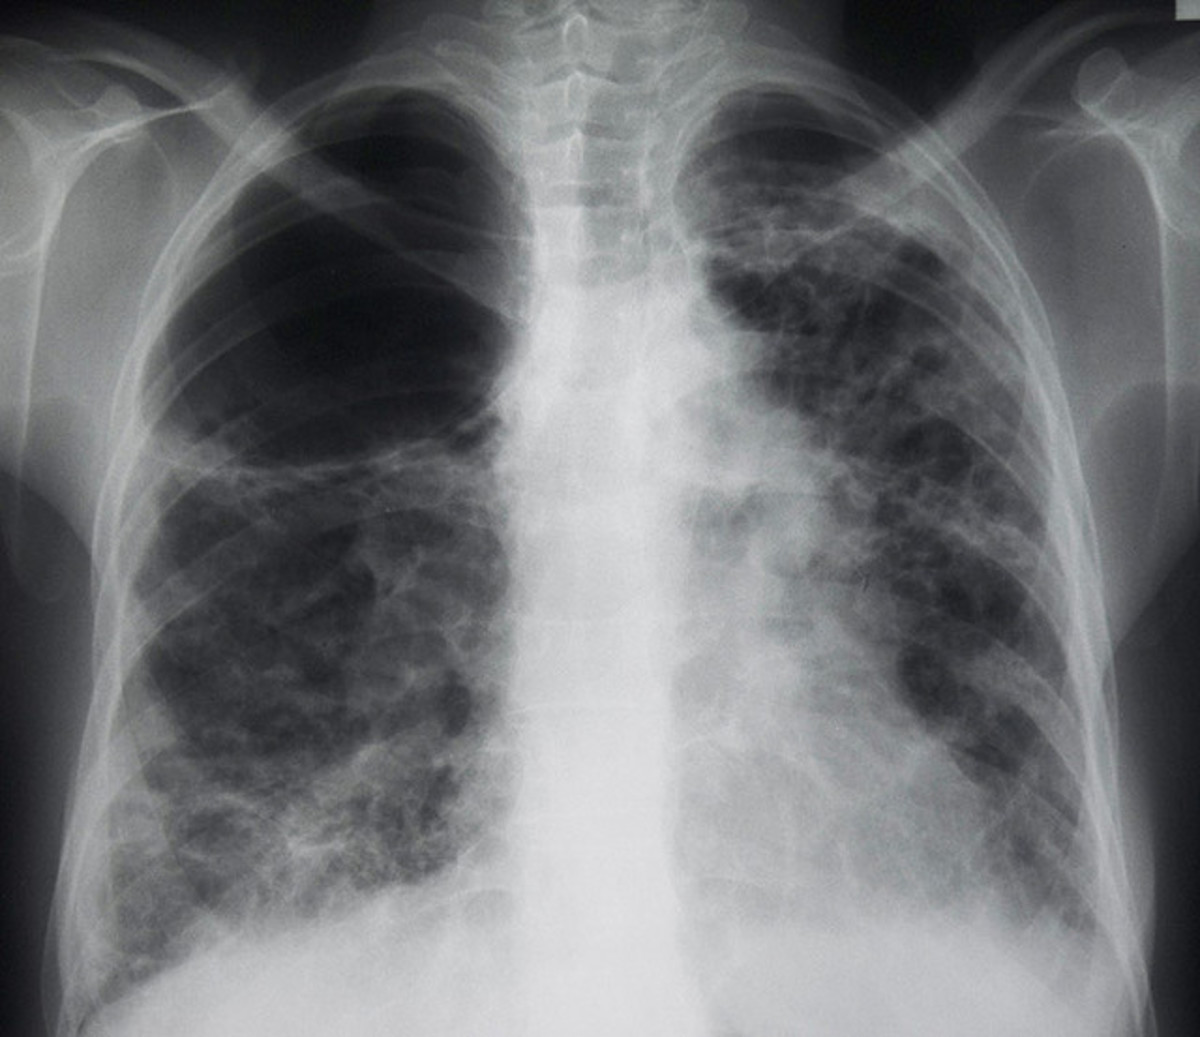 Many of the symptoms of lung cancer (poor appetite, weight loss, fever, fatigue) are not specific. In many people, the cancer has already spread beyond the original site by the time they have symptoms and seek medical attention.